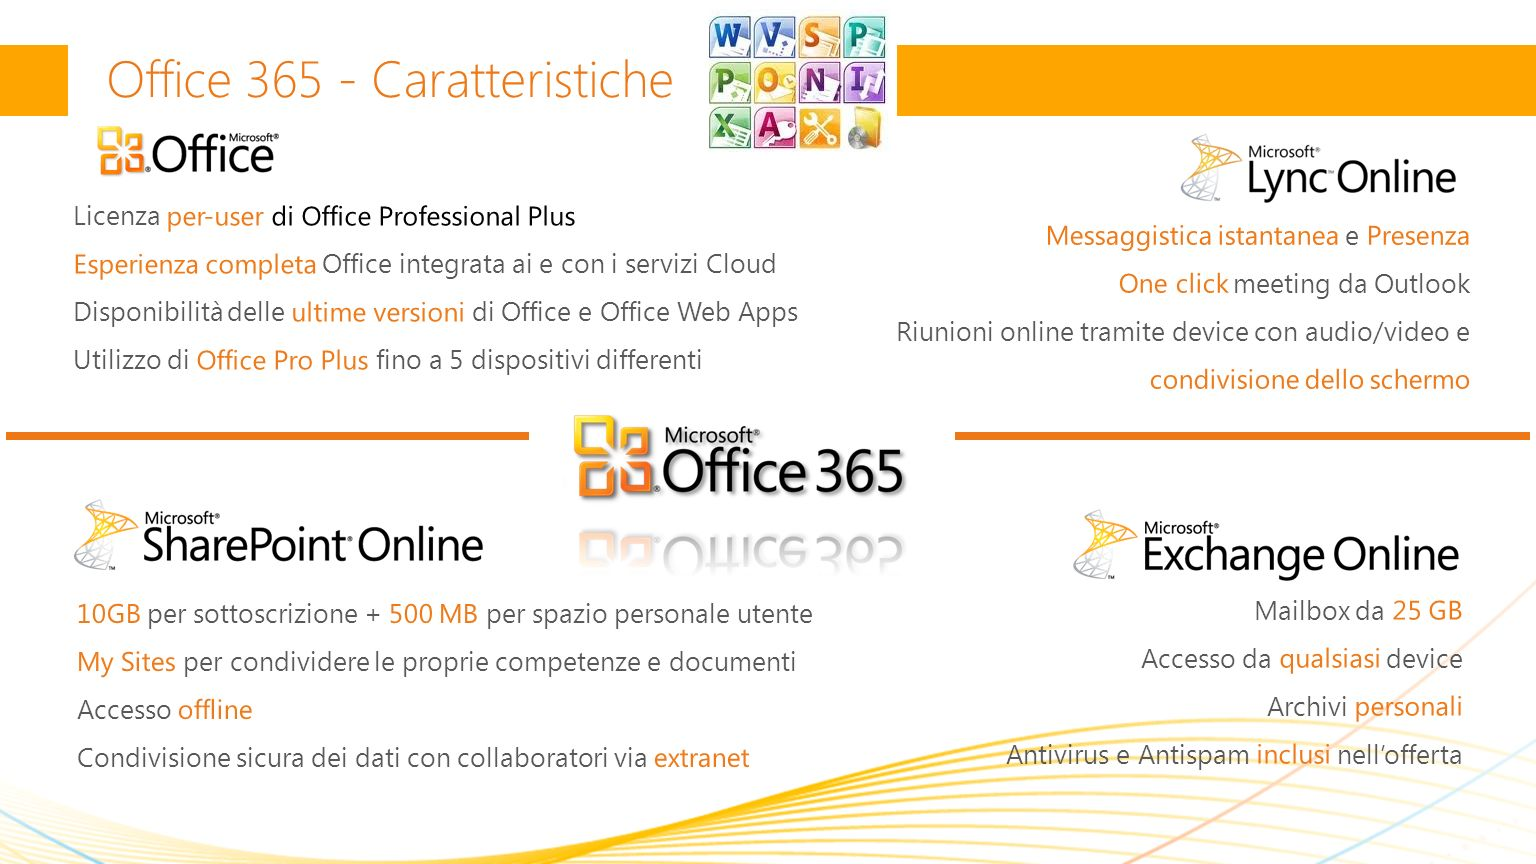 Il Piano 2 della singola offerta include tutte le features del Piano 1 Il Piano Office Web App include sempre SharePoint Online Non sono disponibili i singoli prodotti per il Piano P1 15 Exchange Online (Piano 1) Exchange con 25GB spazio mailbox, accesso client e mobility, archiviazione online Integrazione con Voicemail e Advanced Archiving (Legal Hold) SharePoint con 10GB di spazio + 500MB spazio personale utente Aggiunta di servizi Excel/Visio/Access, form e data visualization Instant Messaging & Presence, AV Virtual Meeting Client Productivity applications & web apps Exchange Online (Piano 2) SharePoint Online (Piano 1) SharePoint Online (Piano 2) Lync Online (Piano 1) Lync Online (Piano 2) Office Professional Plus Office Web Apps (Piano 1) Office Web Apps (Piano 2) Editing di documenti via browser con SharePoint Online Piano 1 Editing di documenti via browser con SharePoint Online Piano 2 Exchange Online (Kiosk) Email (500MB), Calendar, Contacts, OWA/POP3, AV/AS Piani di acquisto singoli Prodotti